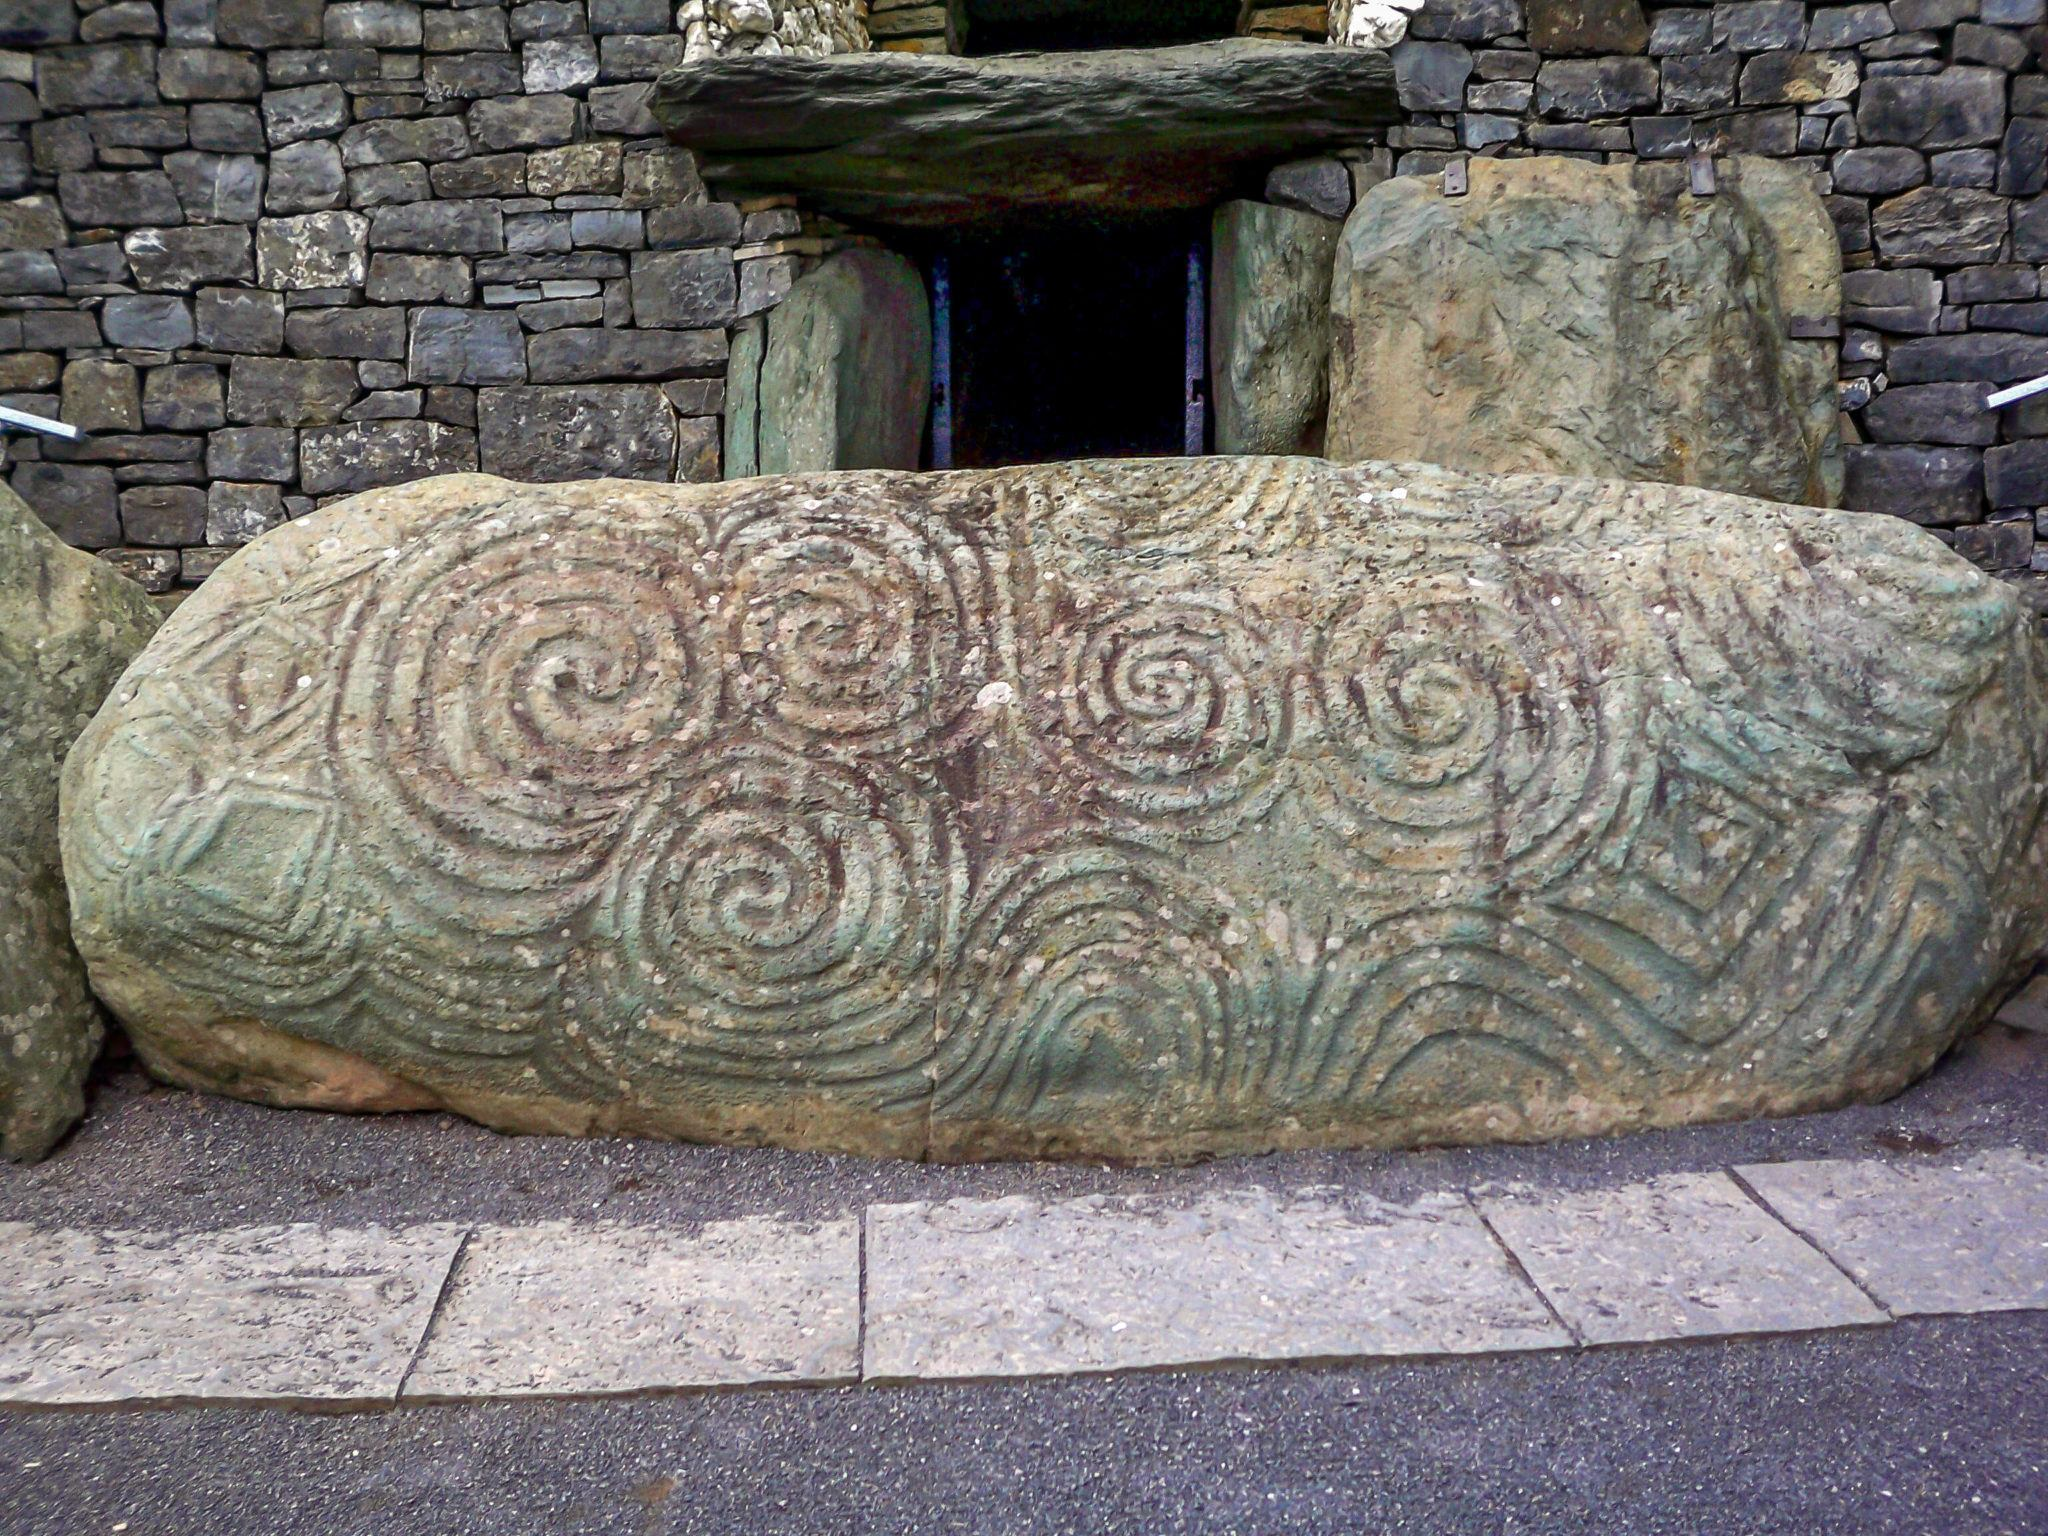 Carved Neolithic stone at the entrance of Newgrange passage tomb